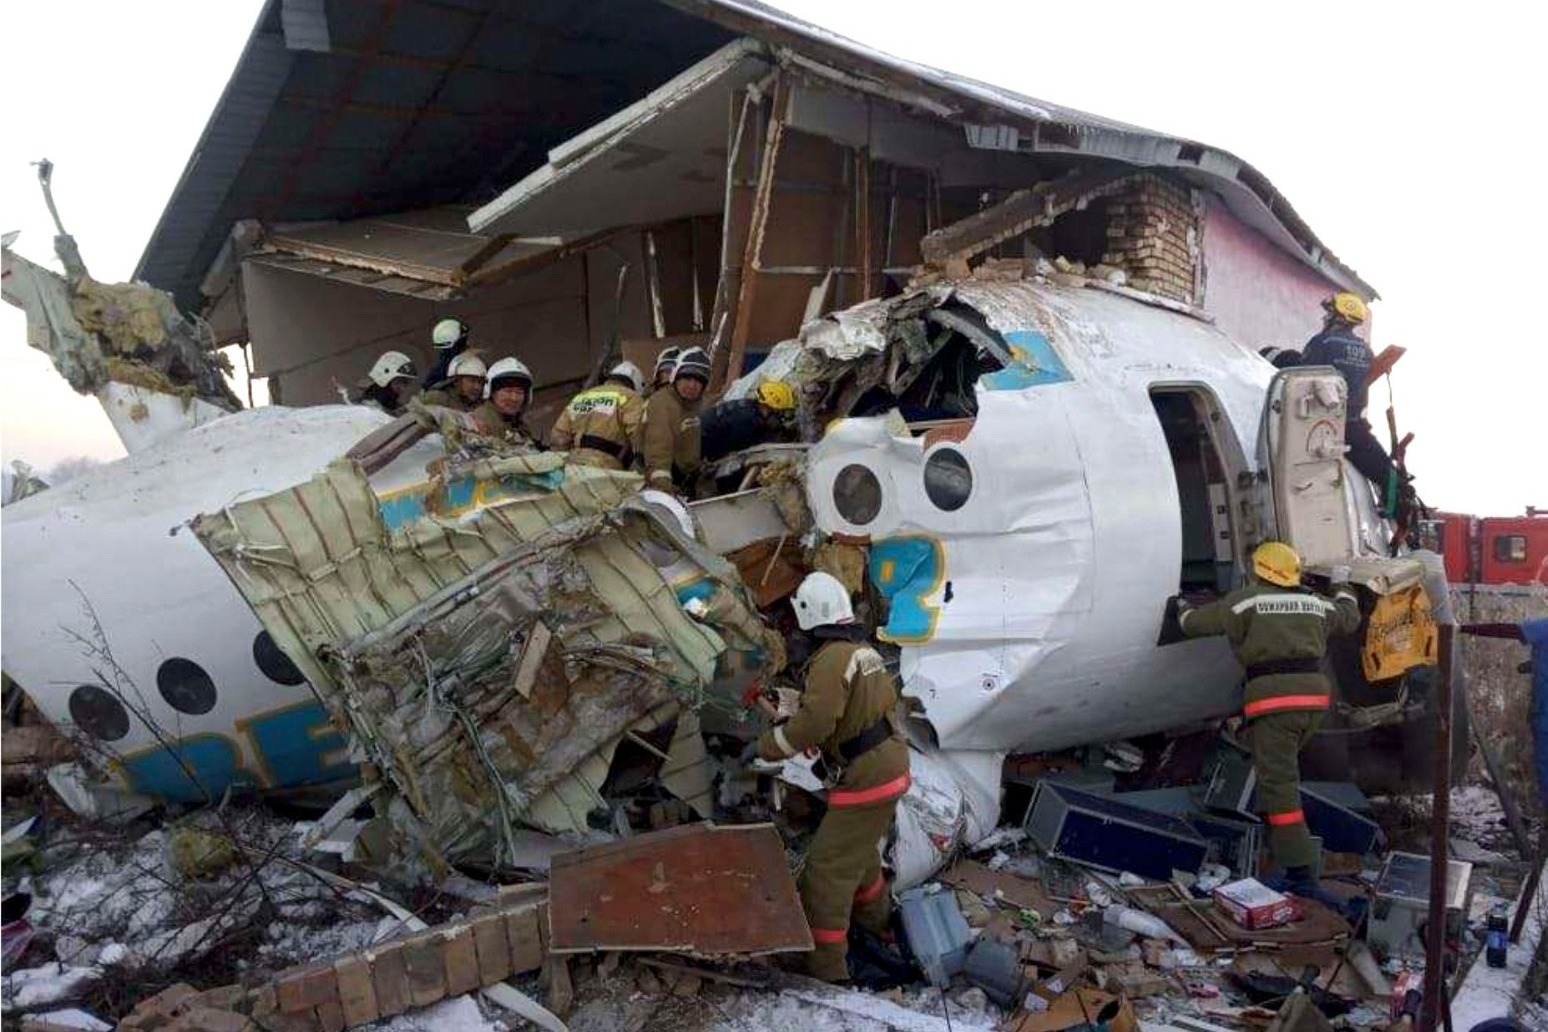 15 KILLED AND 66 INJURED AS PLANE CRASHES IN KAZAKHSTAN